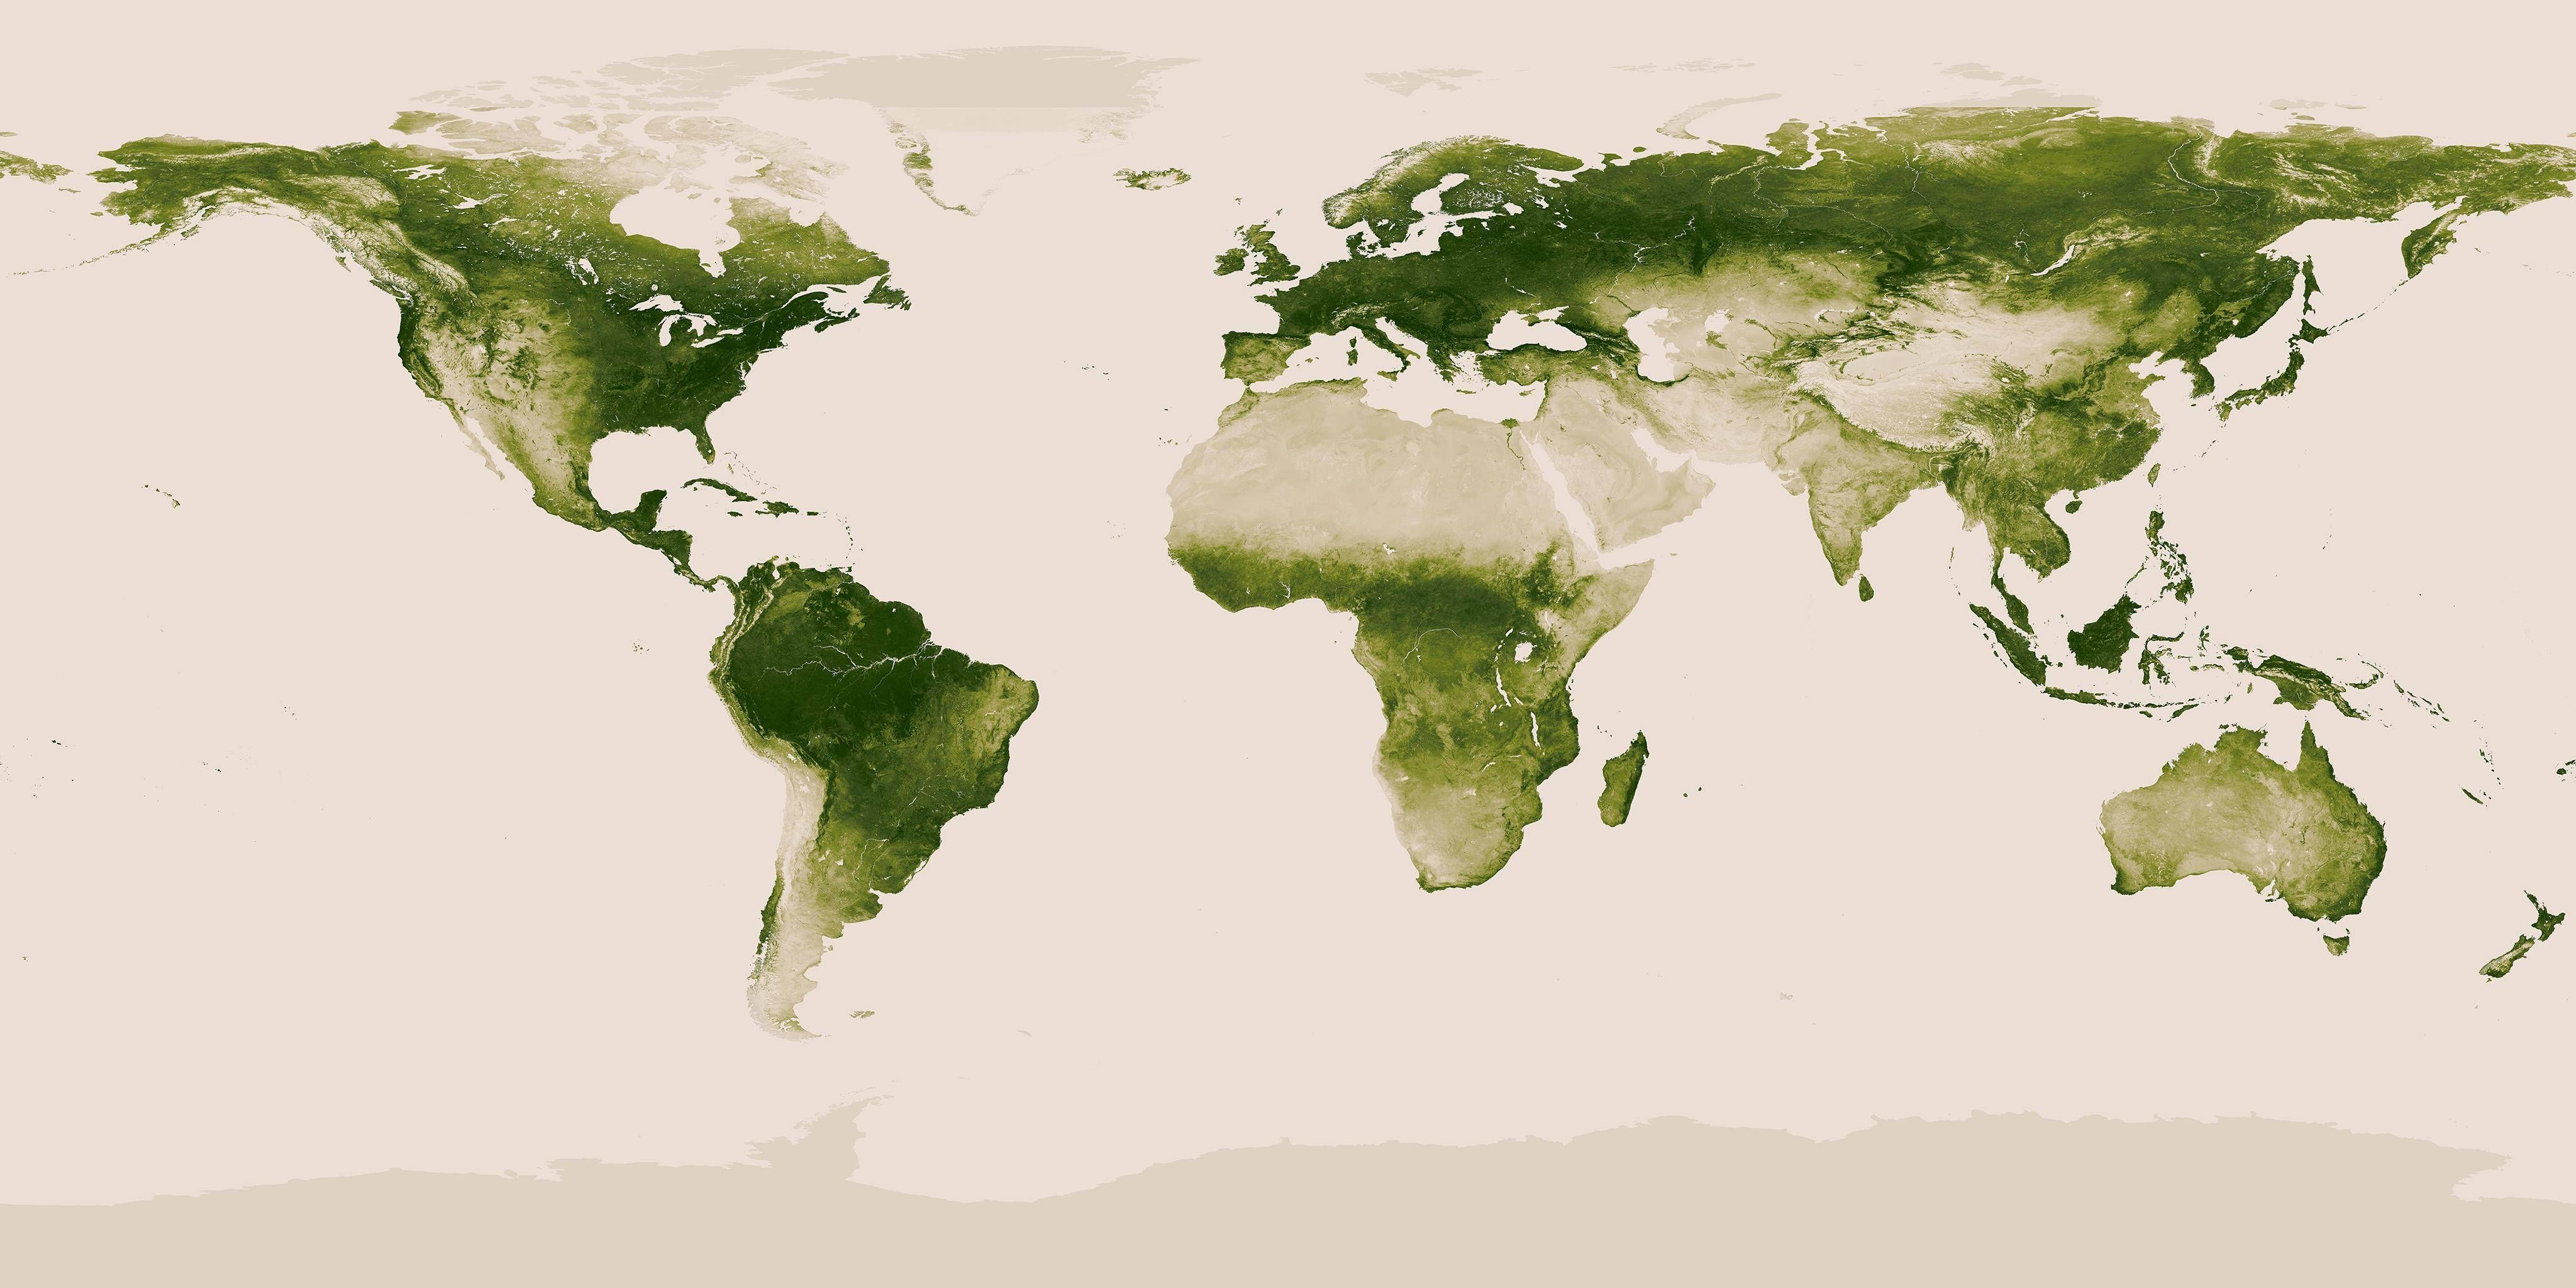 Earths Map%0A A map of Earth u    s vegetation        u   c Using the NASA NOAA Suomi NPP  satellite  scientists can now detect subtle differences in greenness on the     percent of